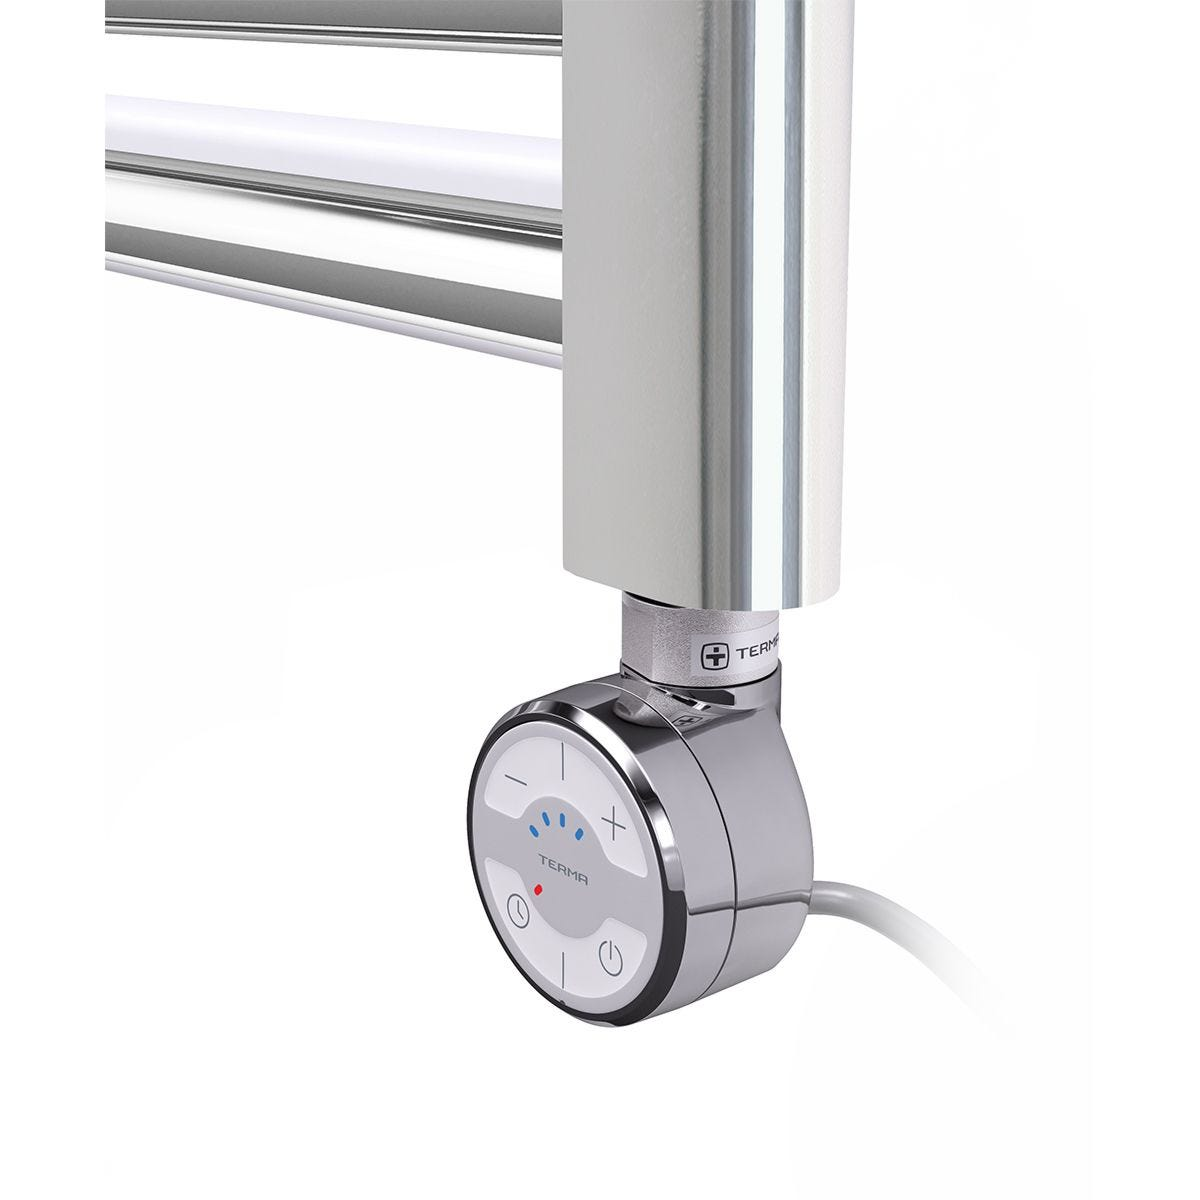 Terma Leo Electric Towel Rail with MOA Thermostatic Element Chrome - 800 x 500mm 200W